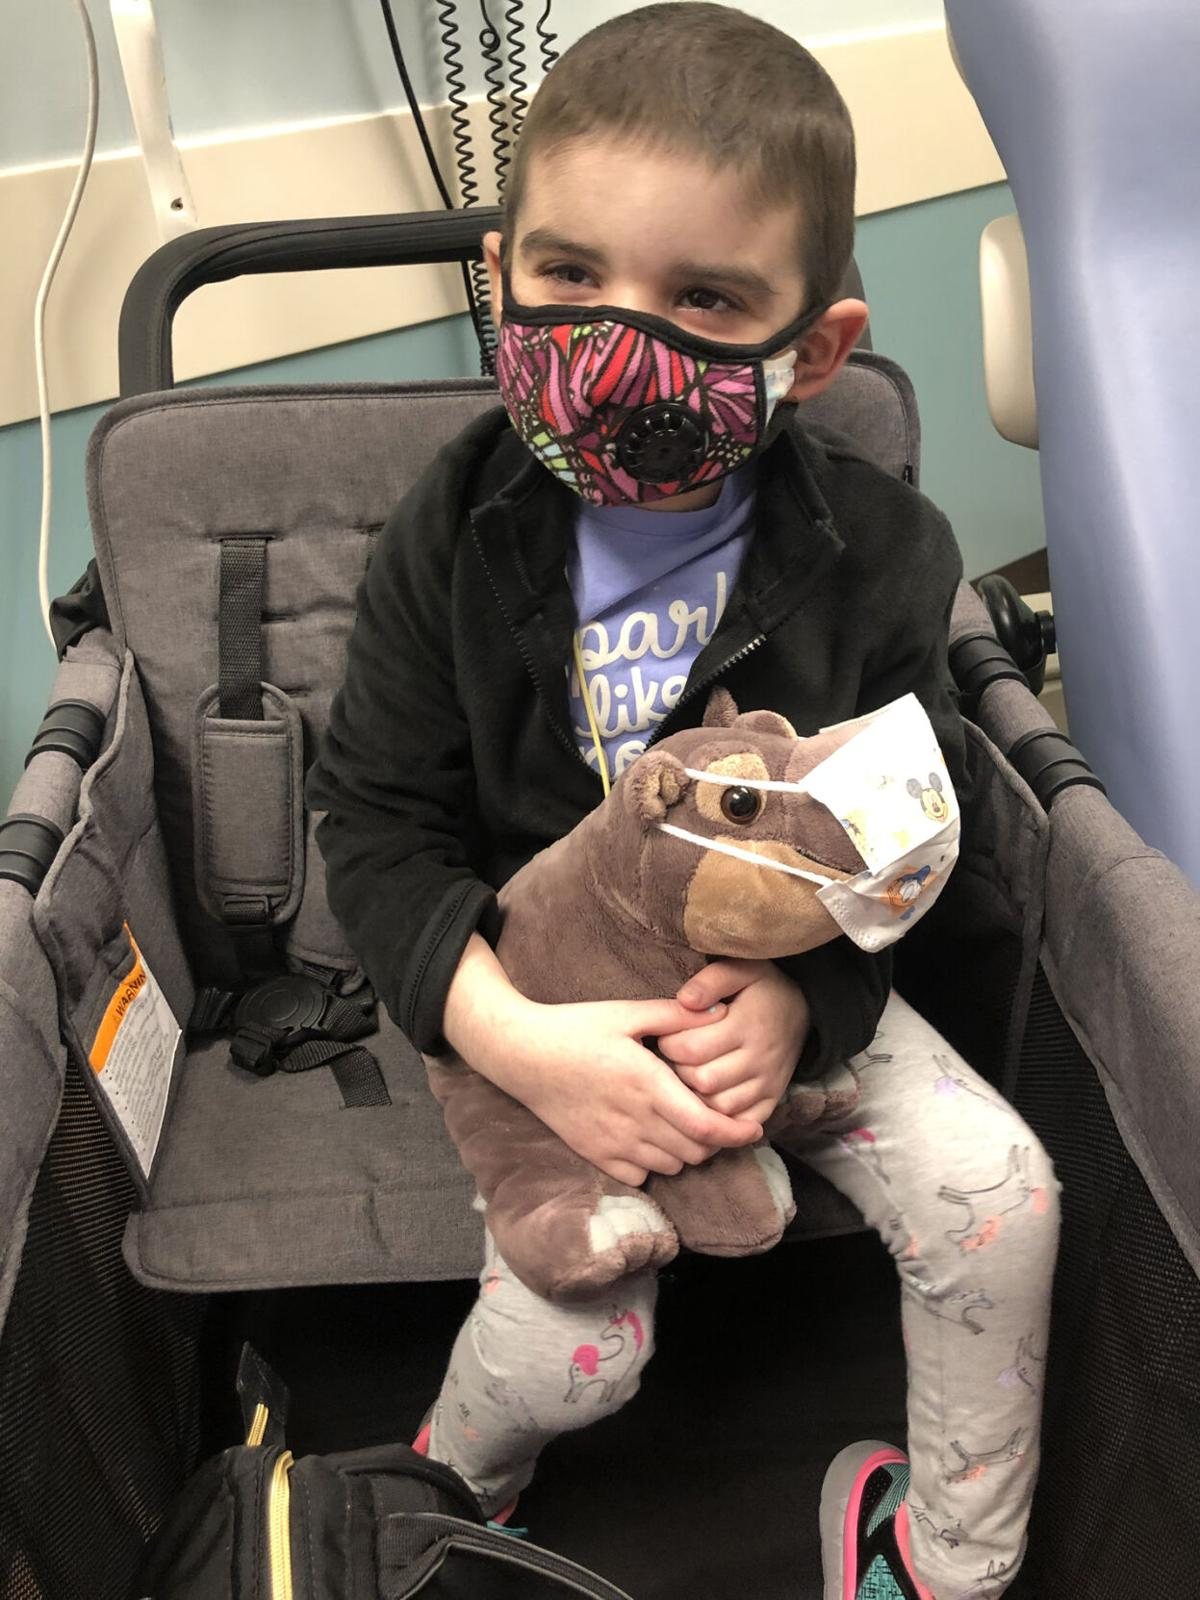 Big steps in Tenley's road to recovery